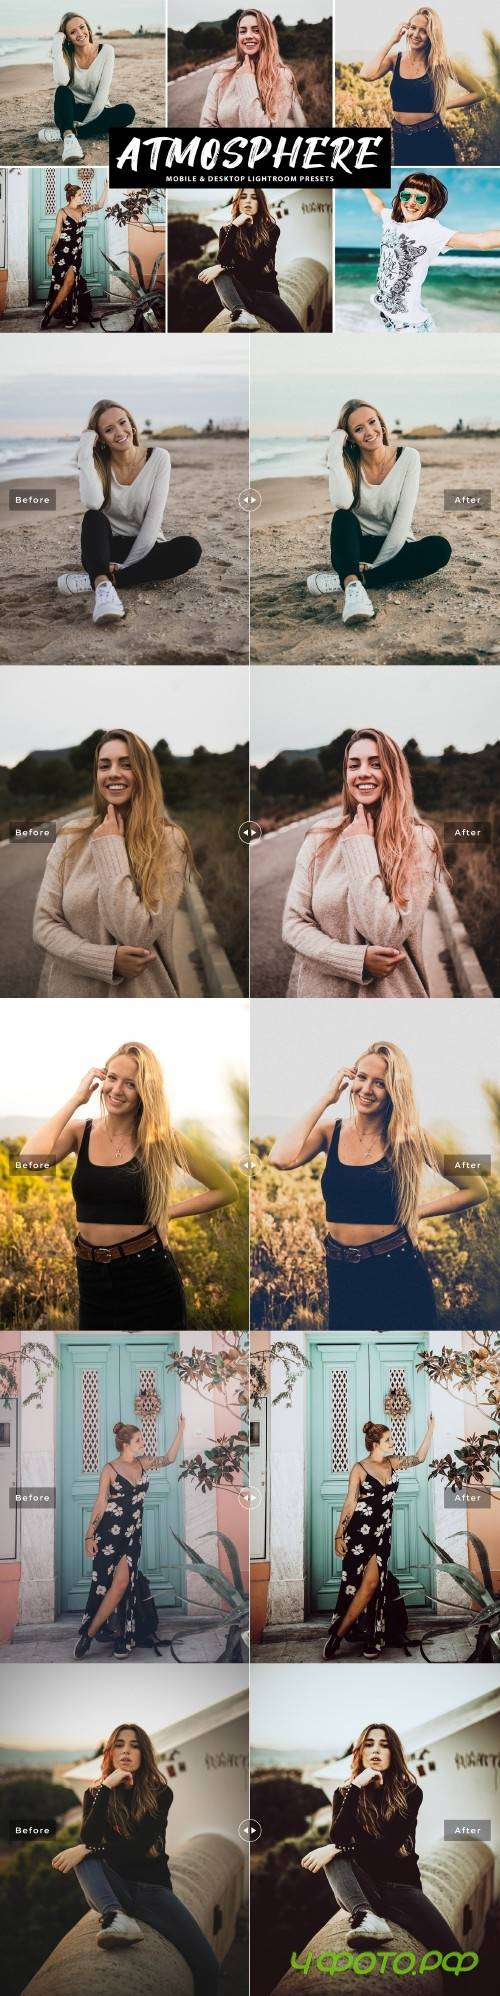 Atmosphere Lightroom Presets Pack - 4083090